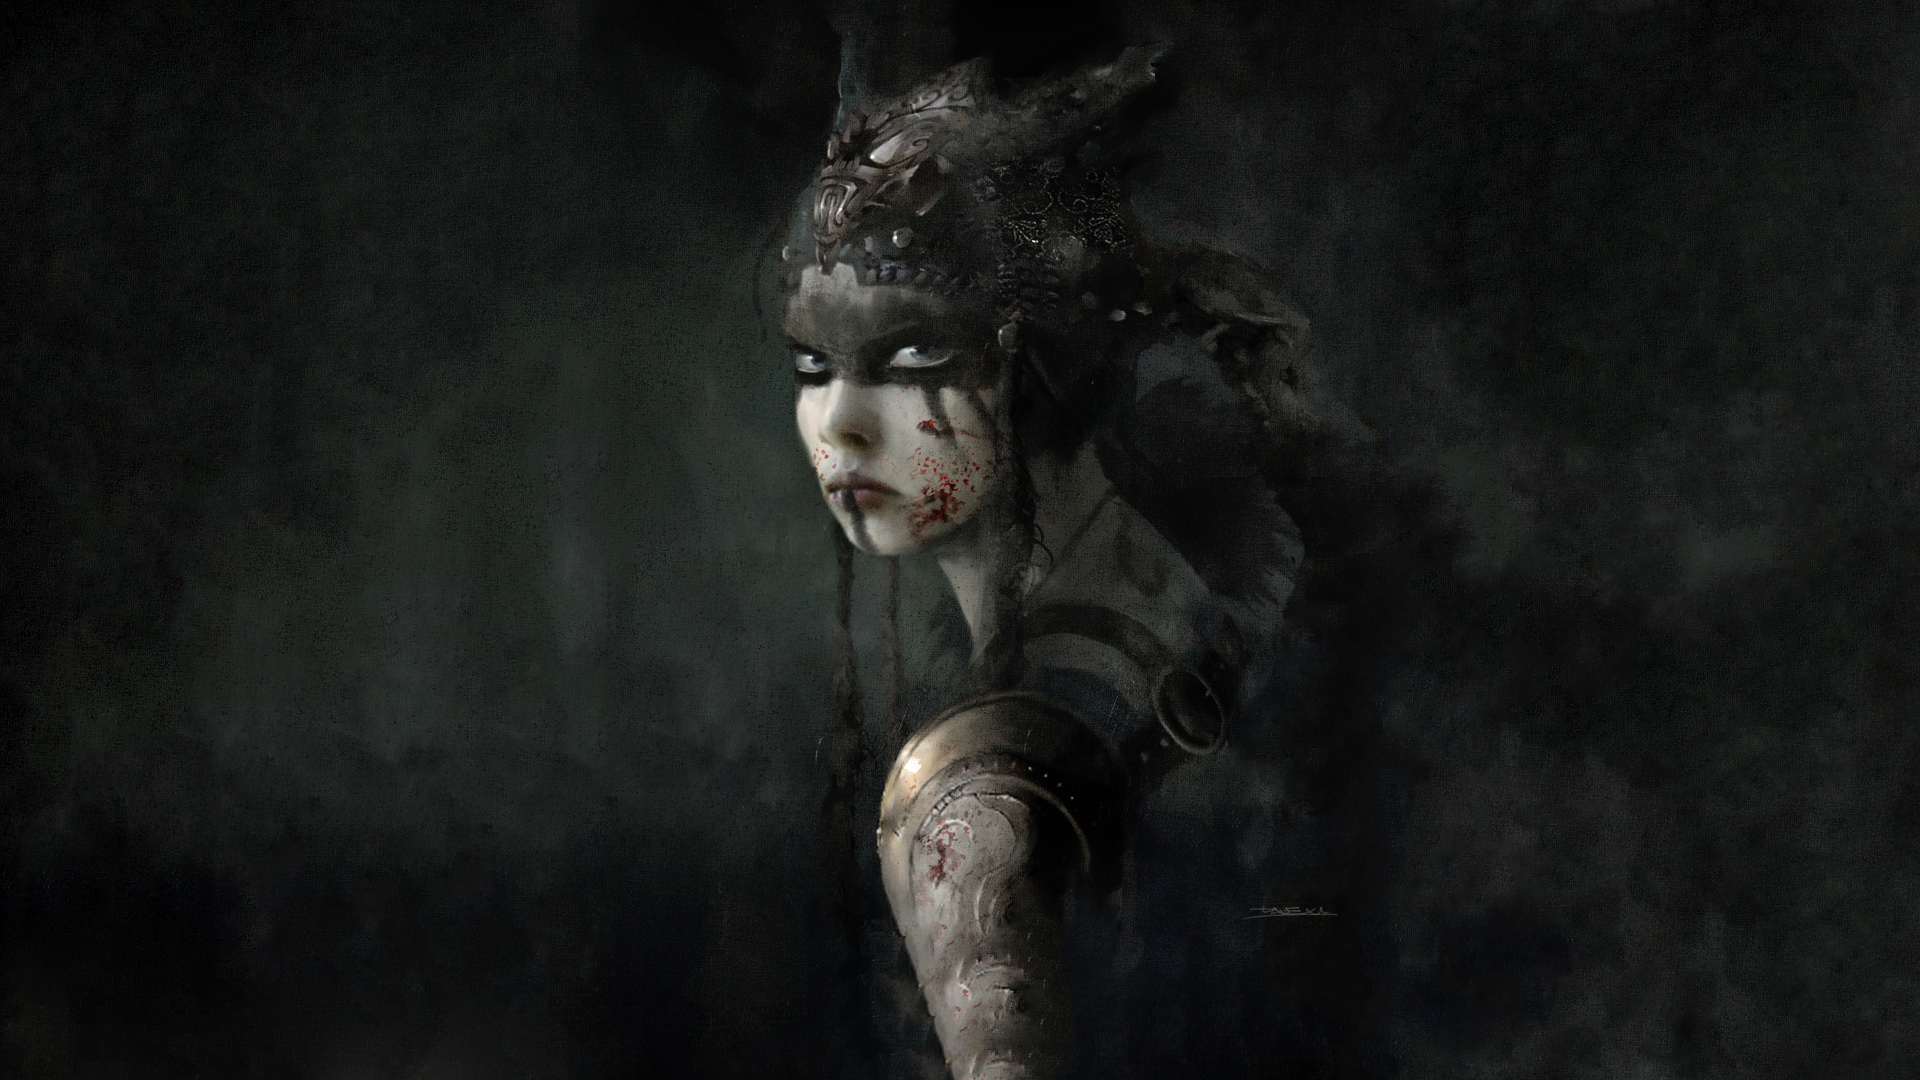 Amazing Hellblade Hd Images Wallpapers All Hd Wallpapers